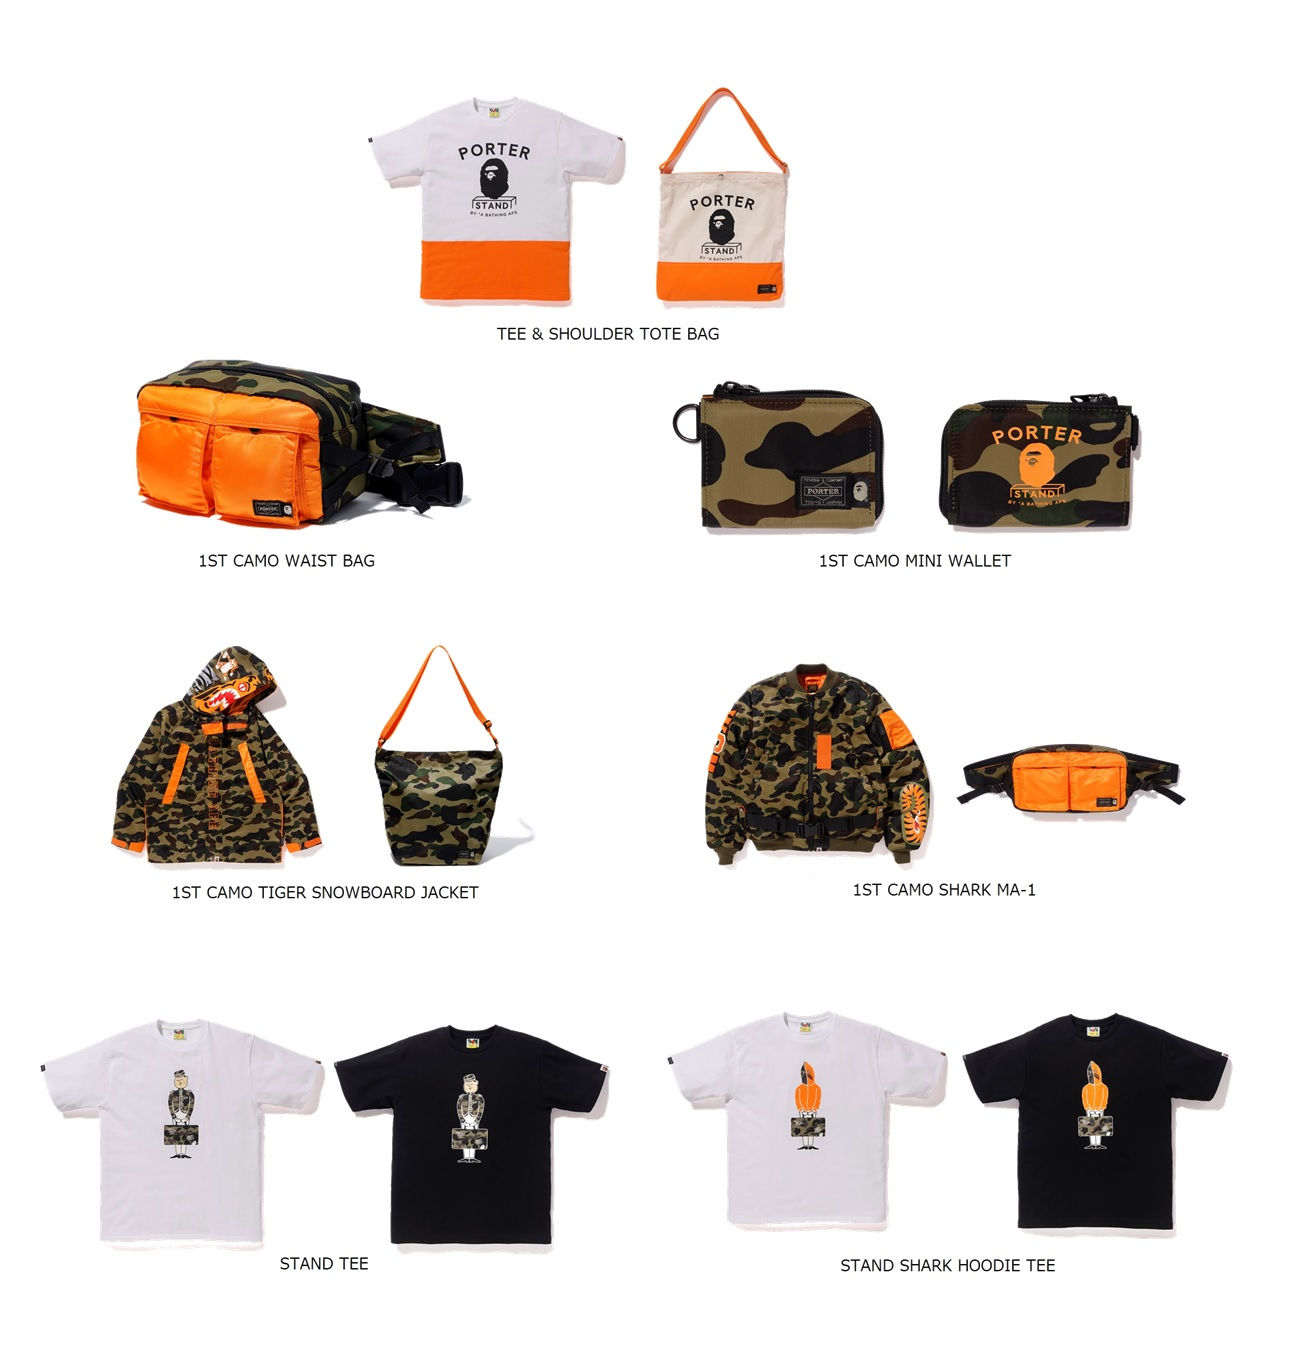 bape-a-bathing-ape-porter-2018-collaboration-release-20180425